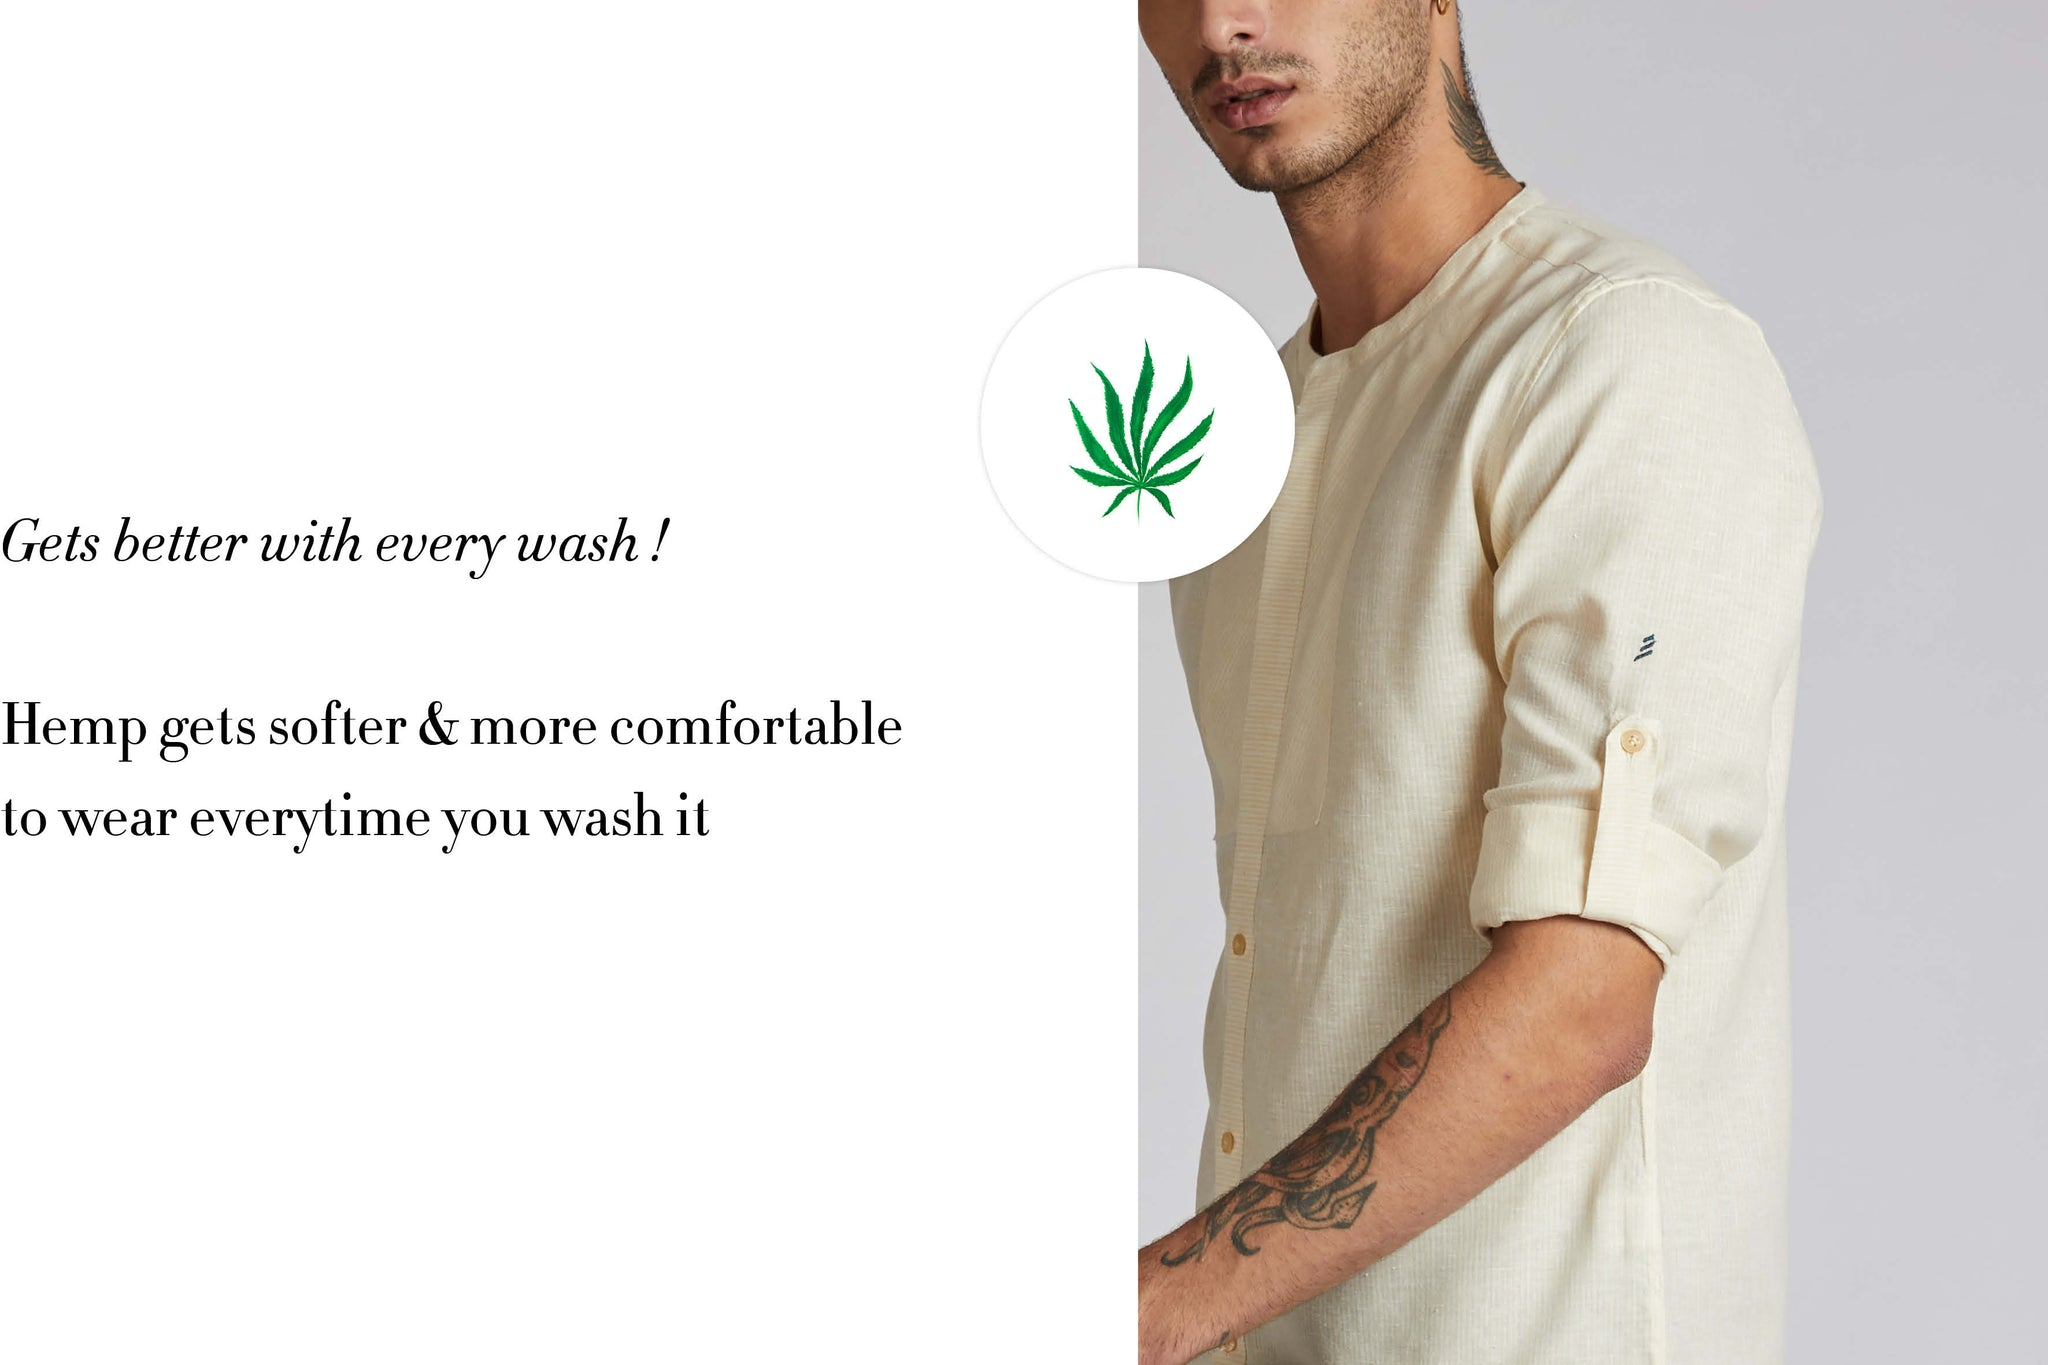 Gets better with every wash ! Hemp gets more softer and comfortable to wear everytime you wash it